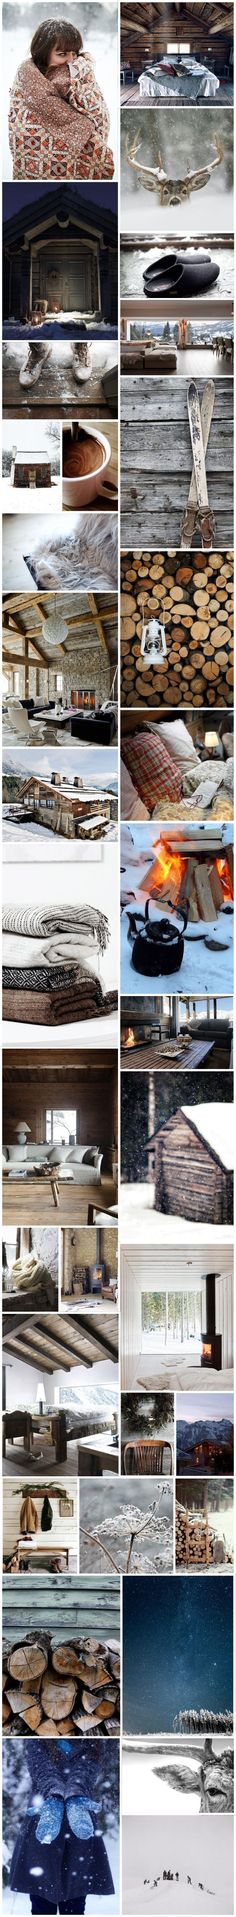 winter cabin 2014 by stylejuicer hygge christmas Casa Hygge, Hygge Life, Winter Cabin, Cosy Winter, Open Fireplace, Winter Wonder, Cabins In The Woods, Winter Time, Winter Holiday